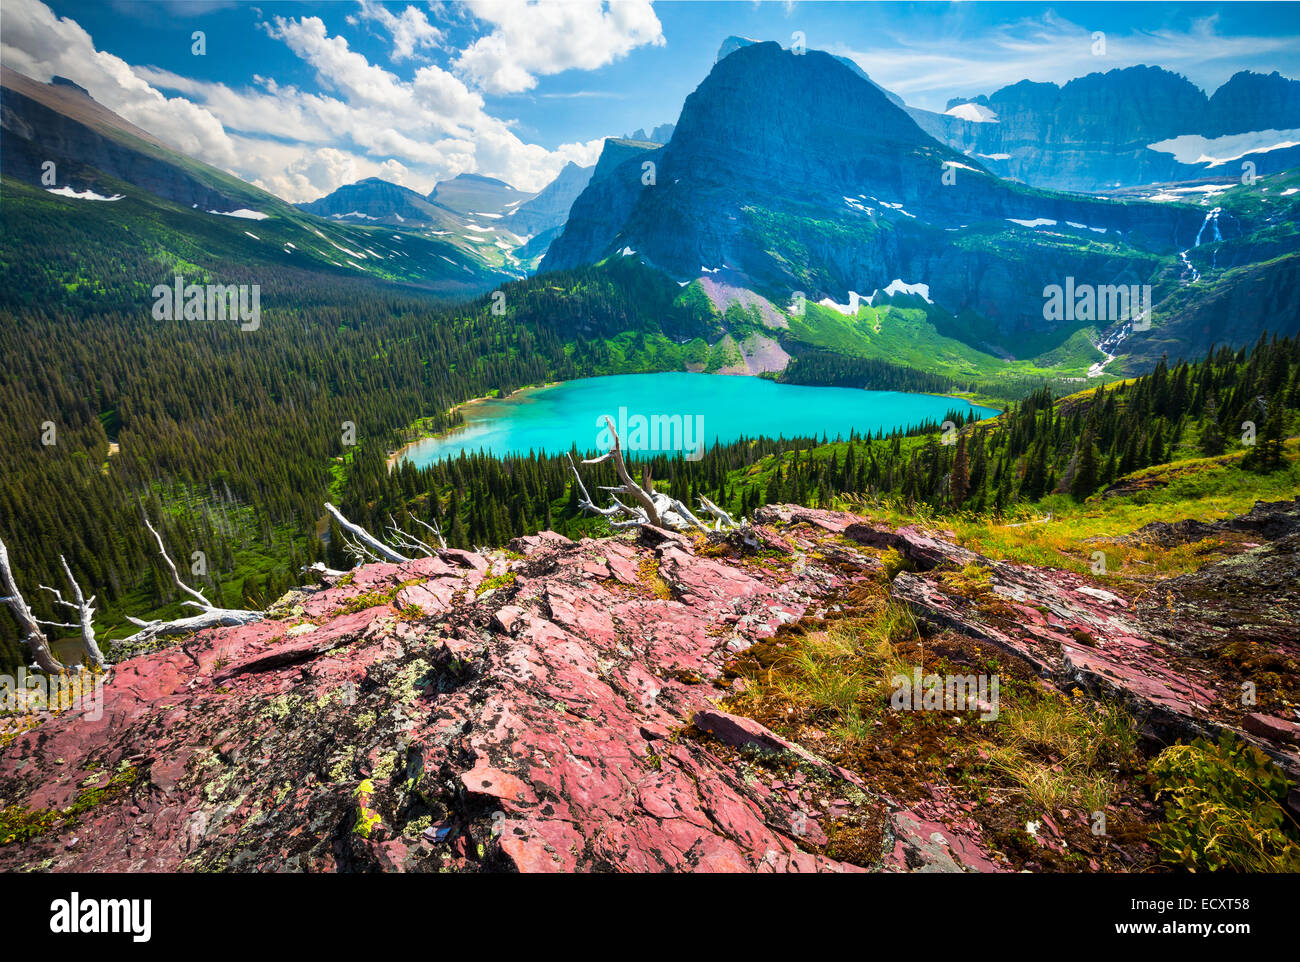 Grinnell Lake is located in Glacier National Park, in the U. S. state of Montana. - Stock Image